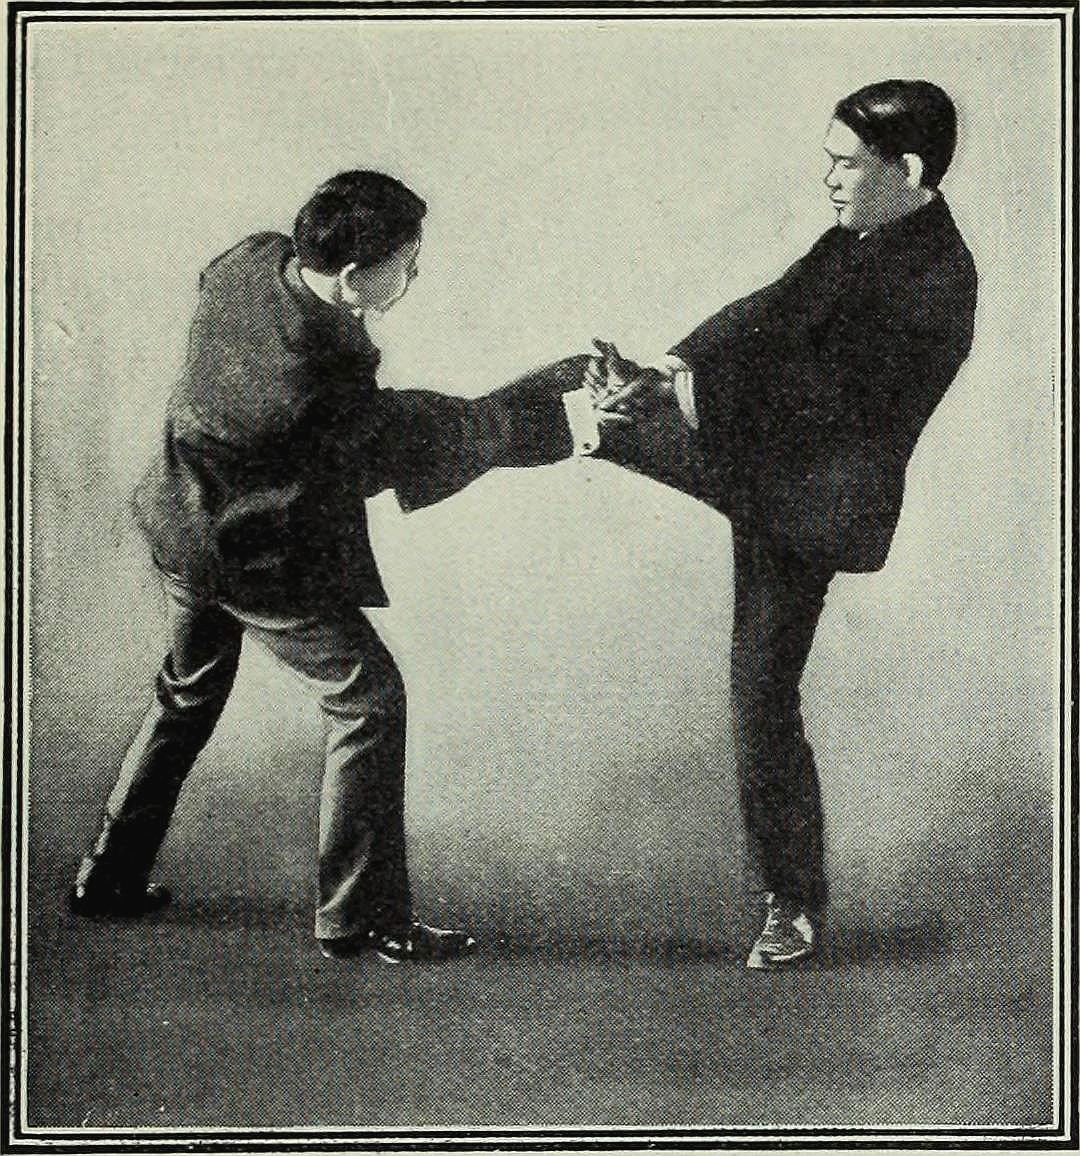 sports-martial arts-jiu-jitsu-interet archive----Image from page 216 of Review of reviews and world's work (1890) 14766191512